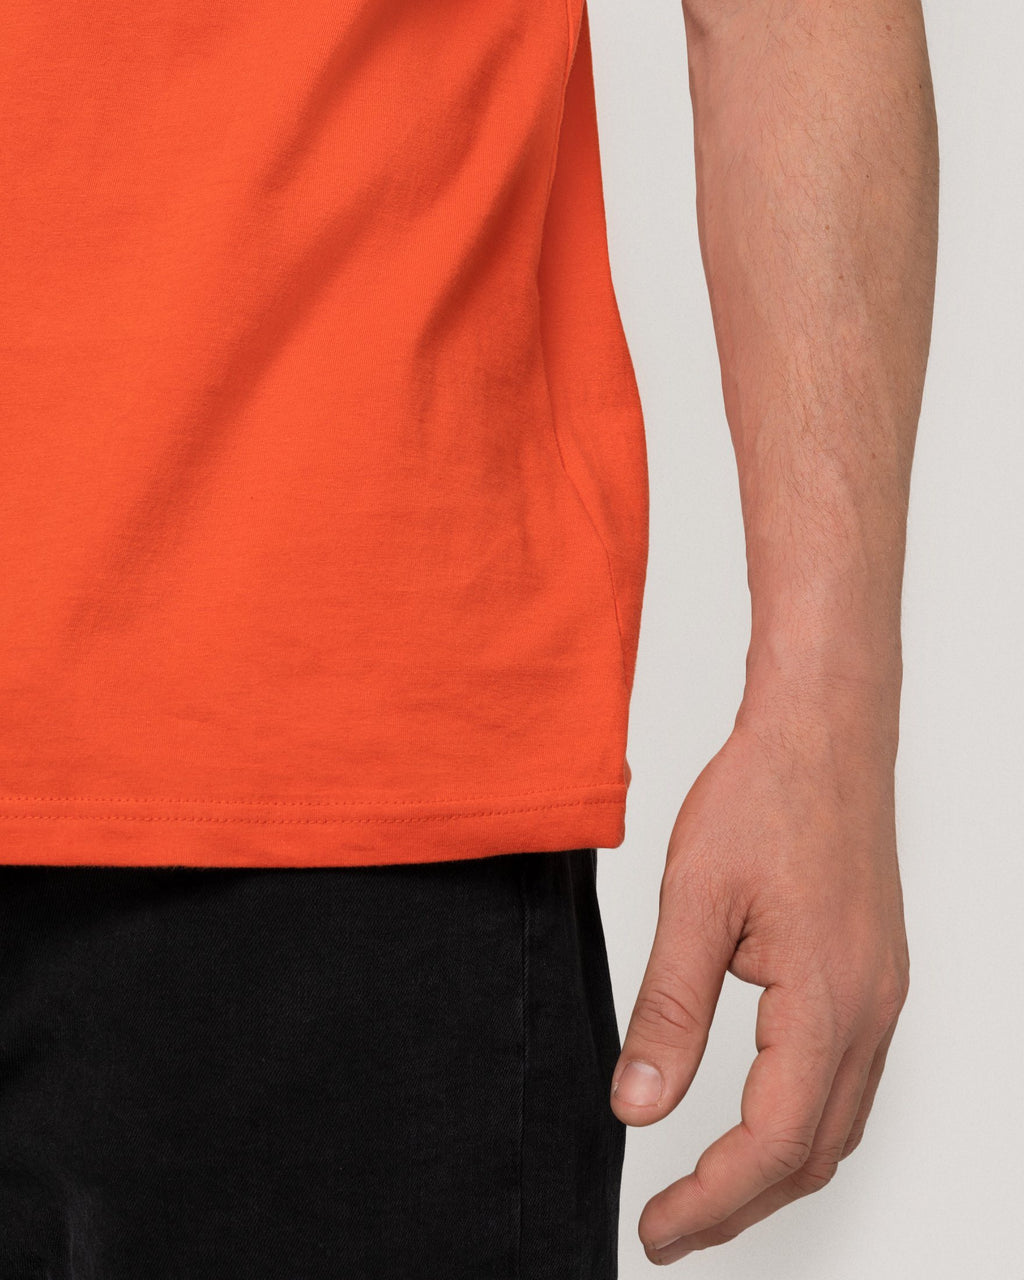 variant_2 | EN Shirt Basic Orange Men ThokkThokk | DE T-Shirt Basic Orange Herren ThokkThokk